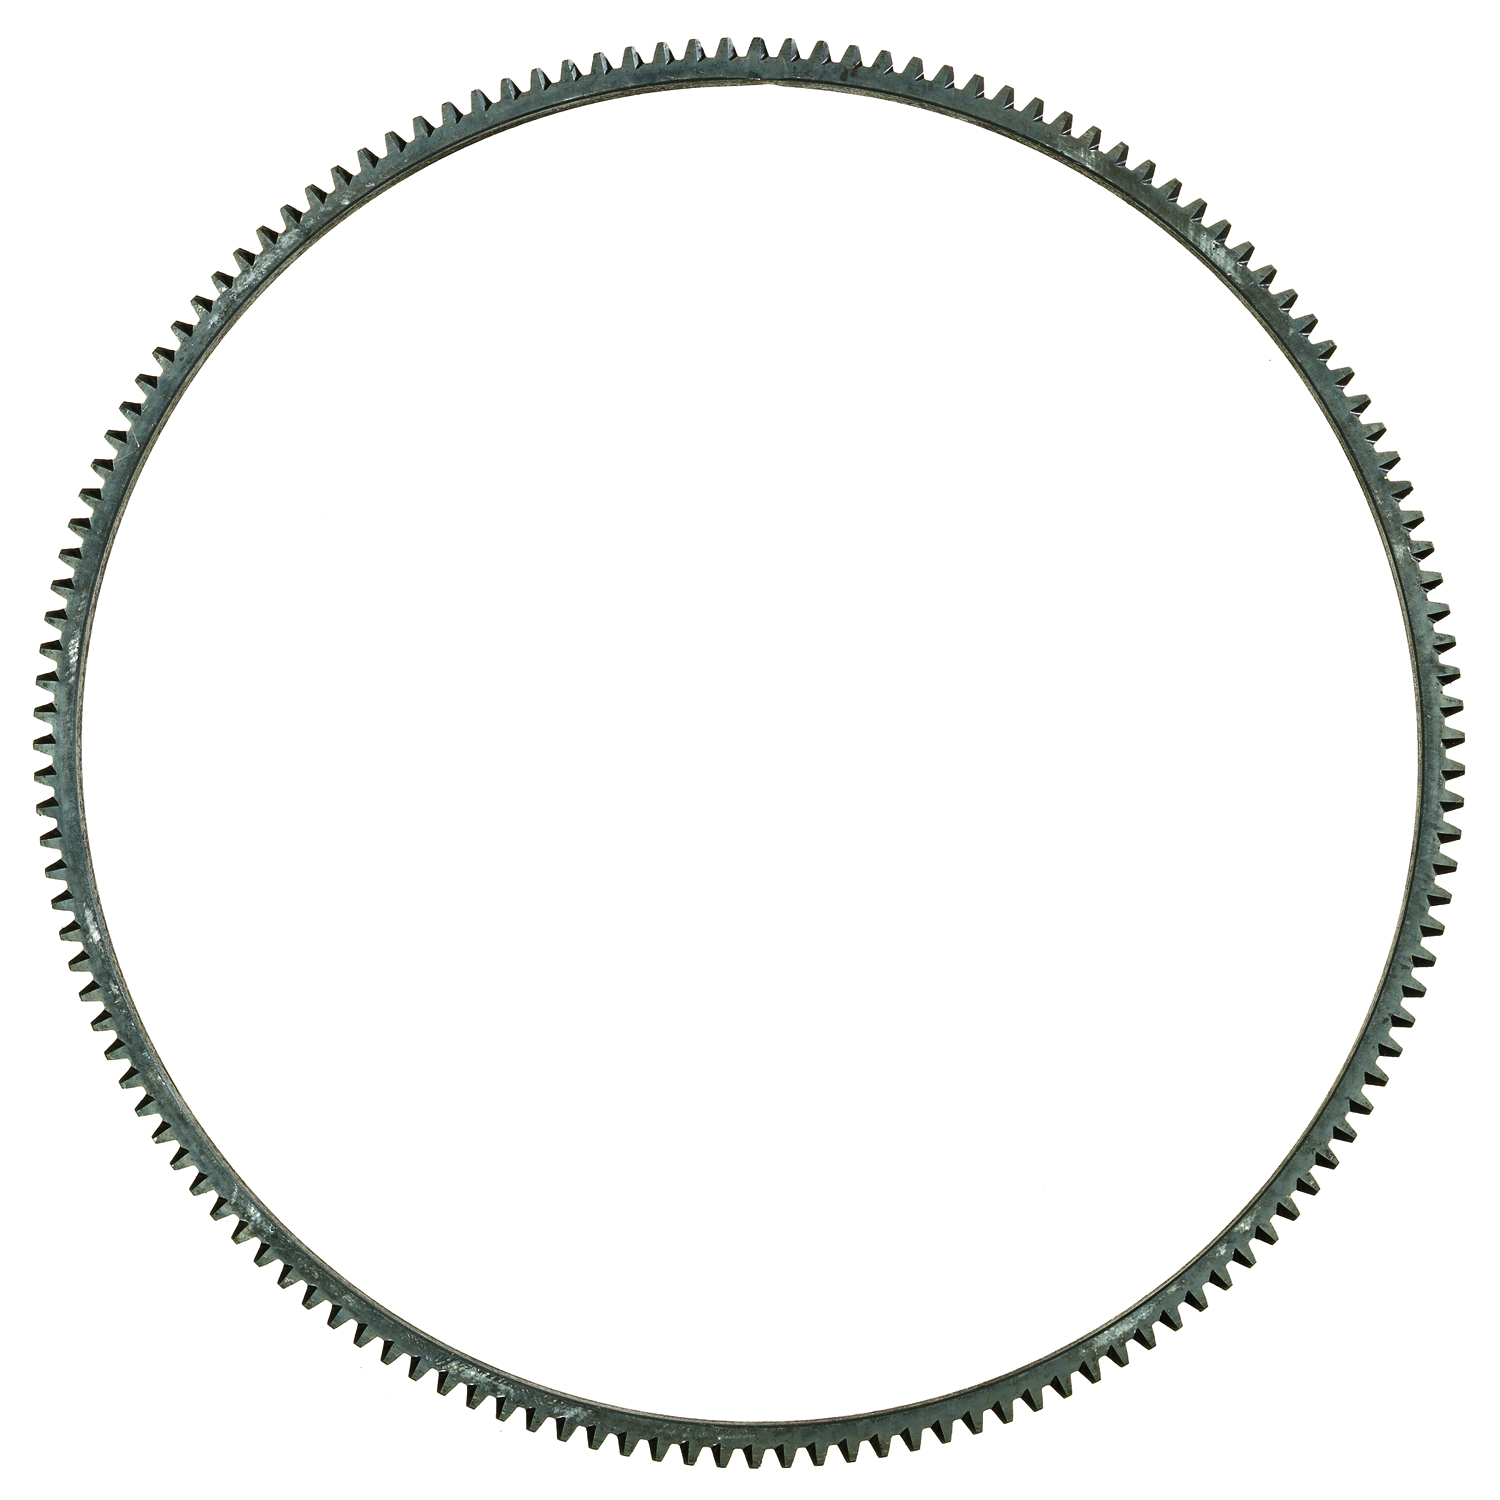 Atp Za536 Ring Gear Outer Diameter 14 129 Inner Diameter